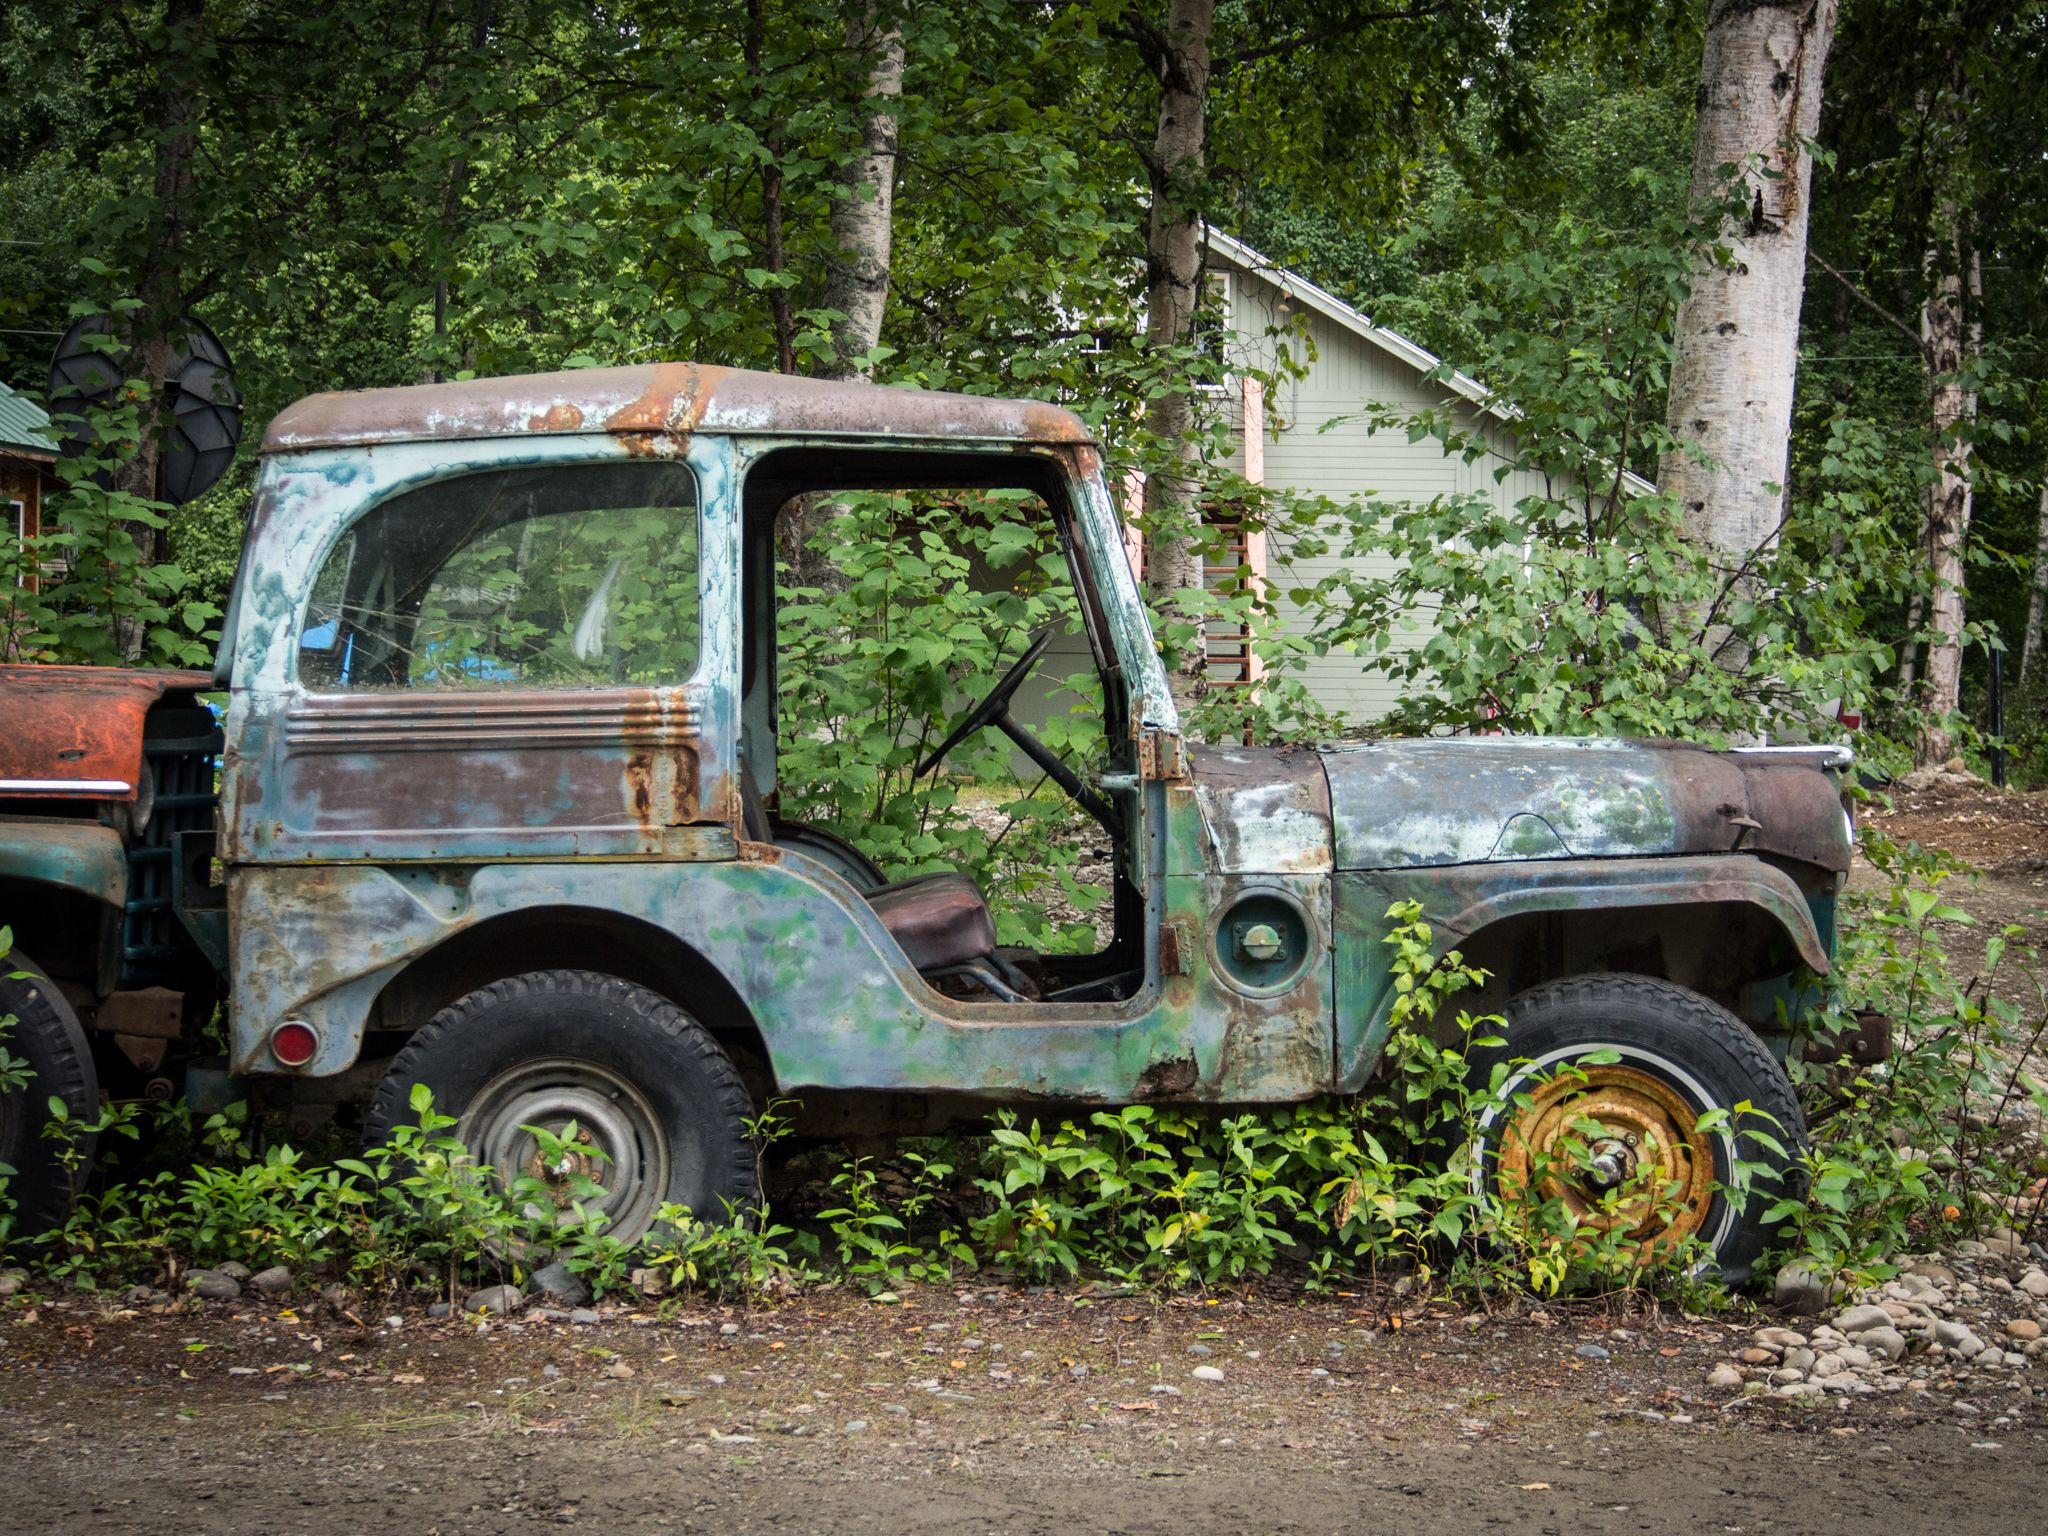 medium resolution of willys jeep m38a1 with custom hard top